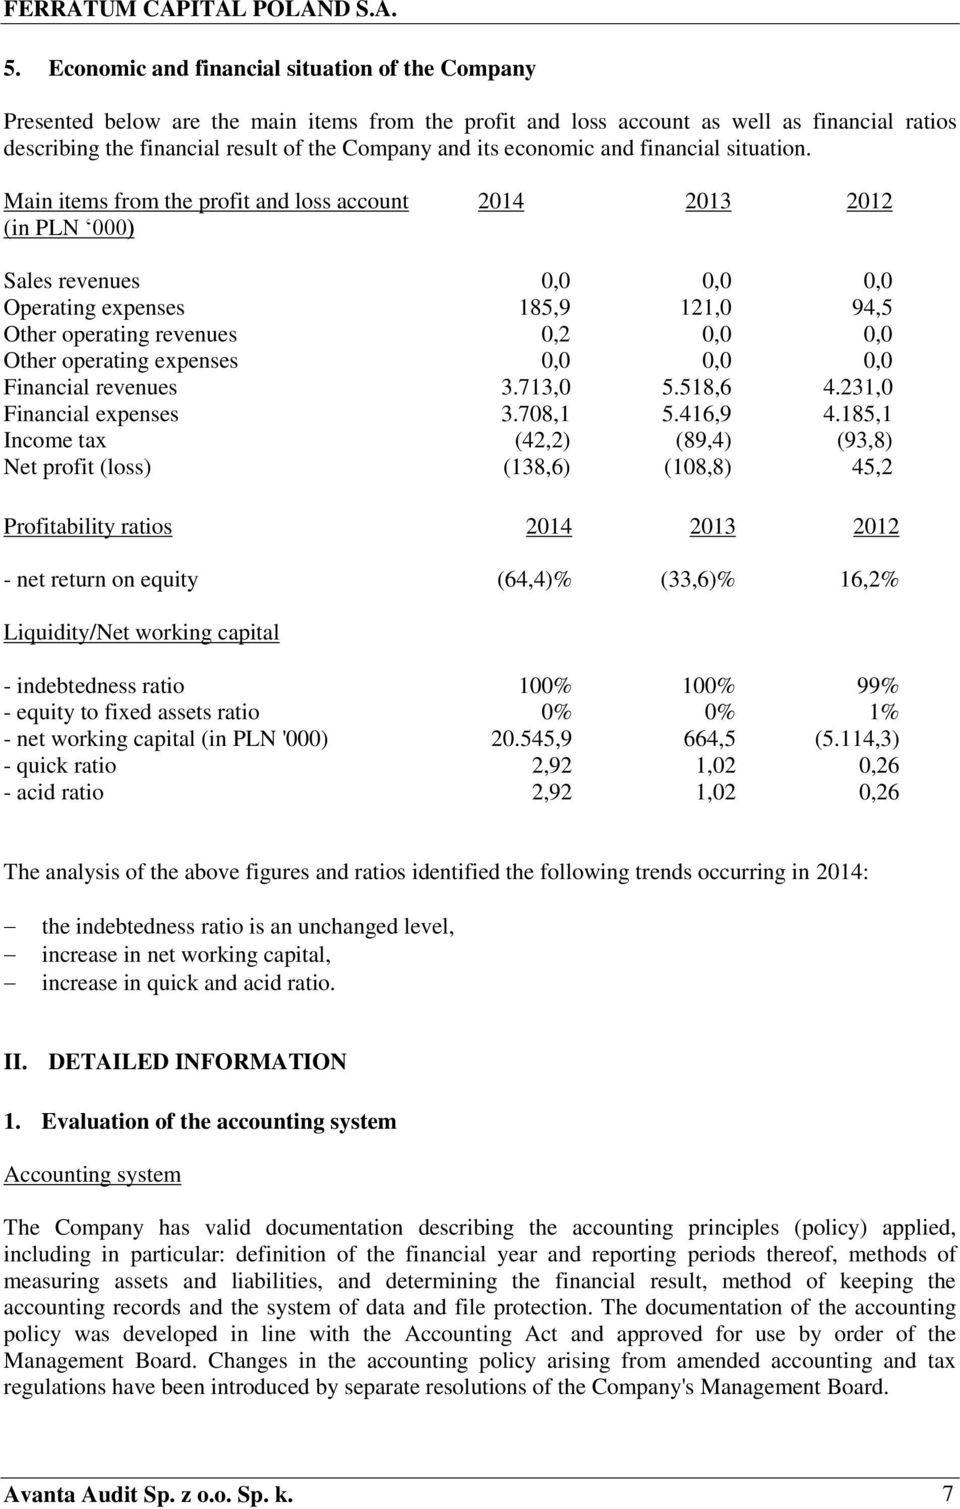 Main items from the profit and loss account (in PLN 000) 2014 2013 2012 Sales revenues 0,0 0,0 0,0 Operating expenses 185,9 121,0 94,5 Other operating revenues 0,2 0,0 0,0 Other operating expenses